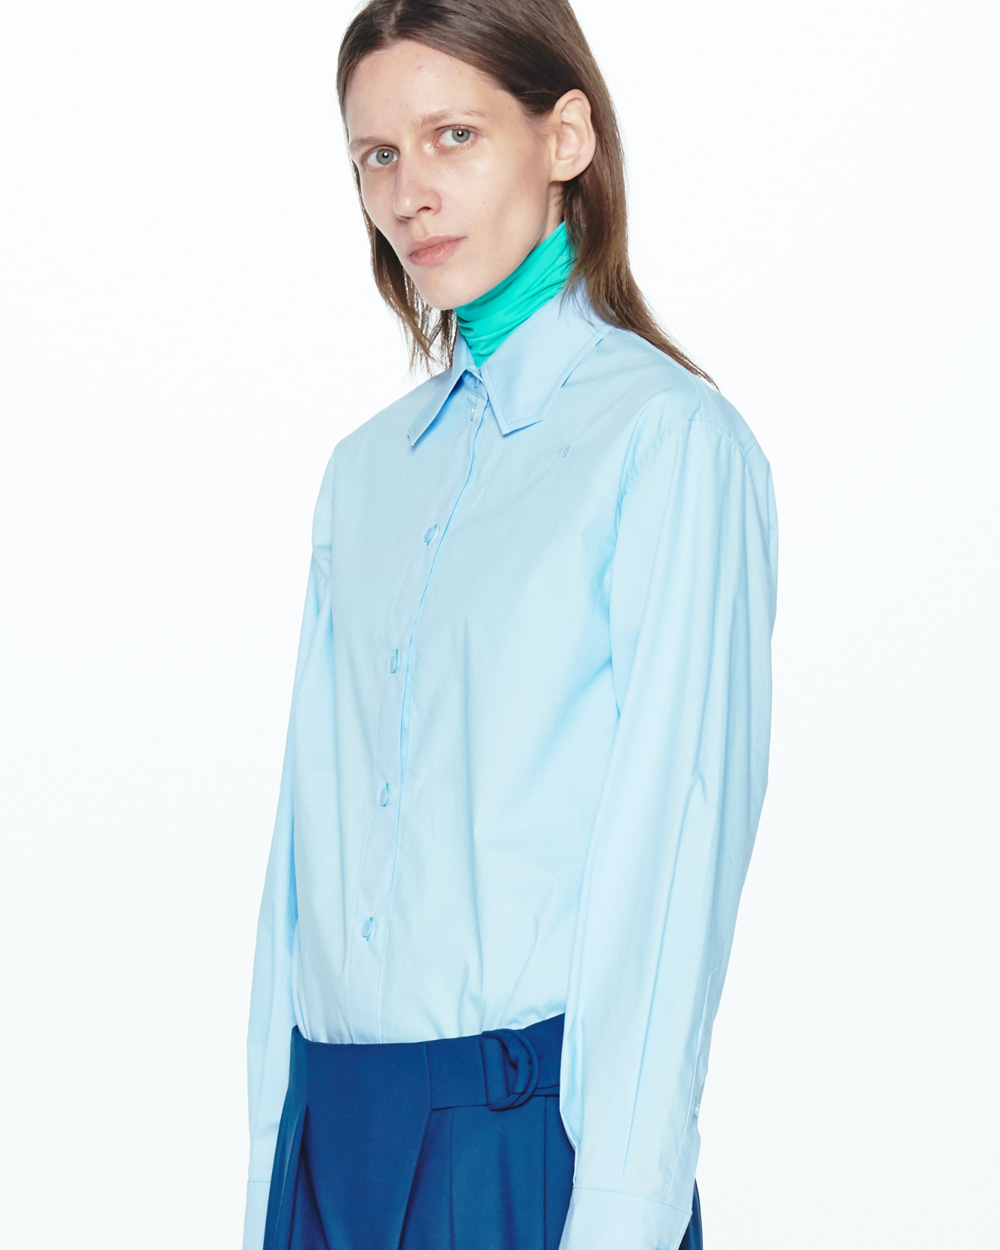 PF20 UNIQUE COLLARED SHIRT